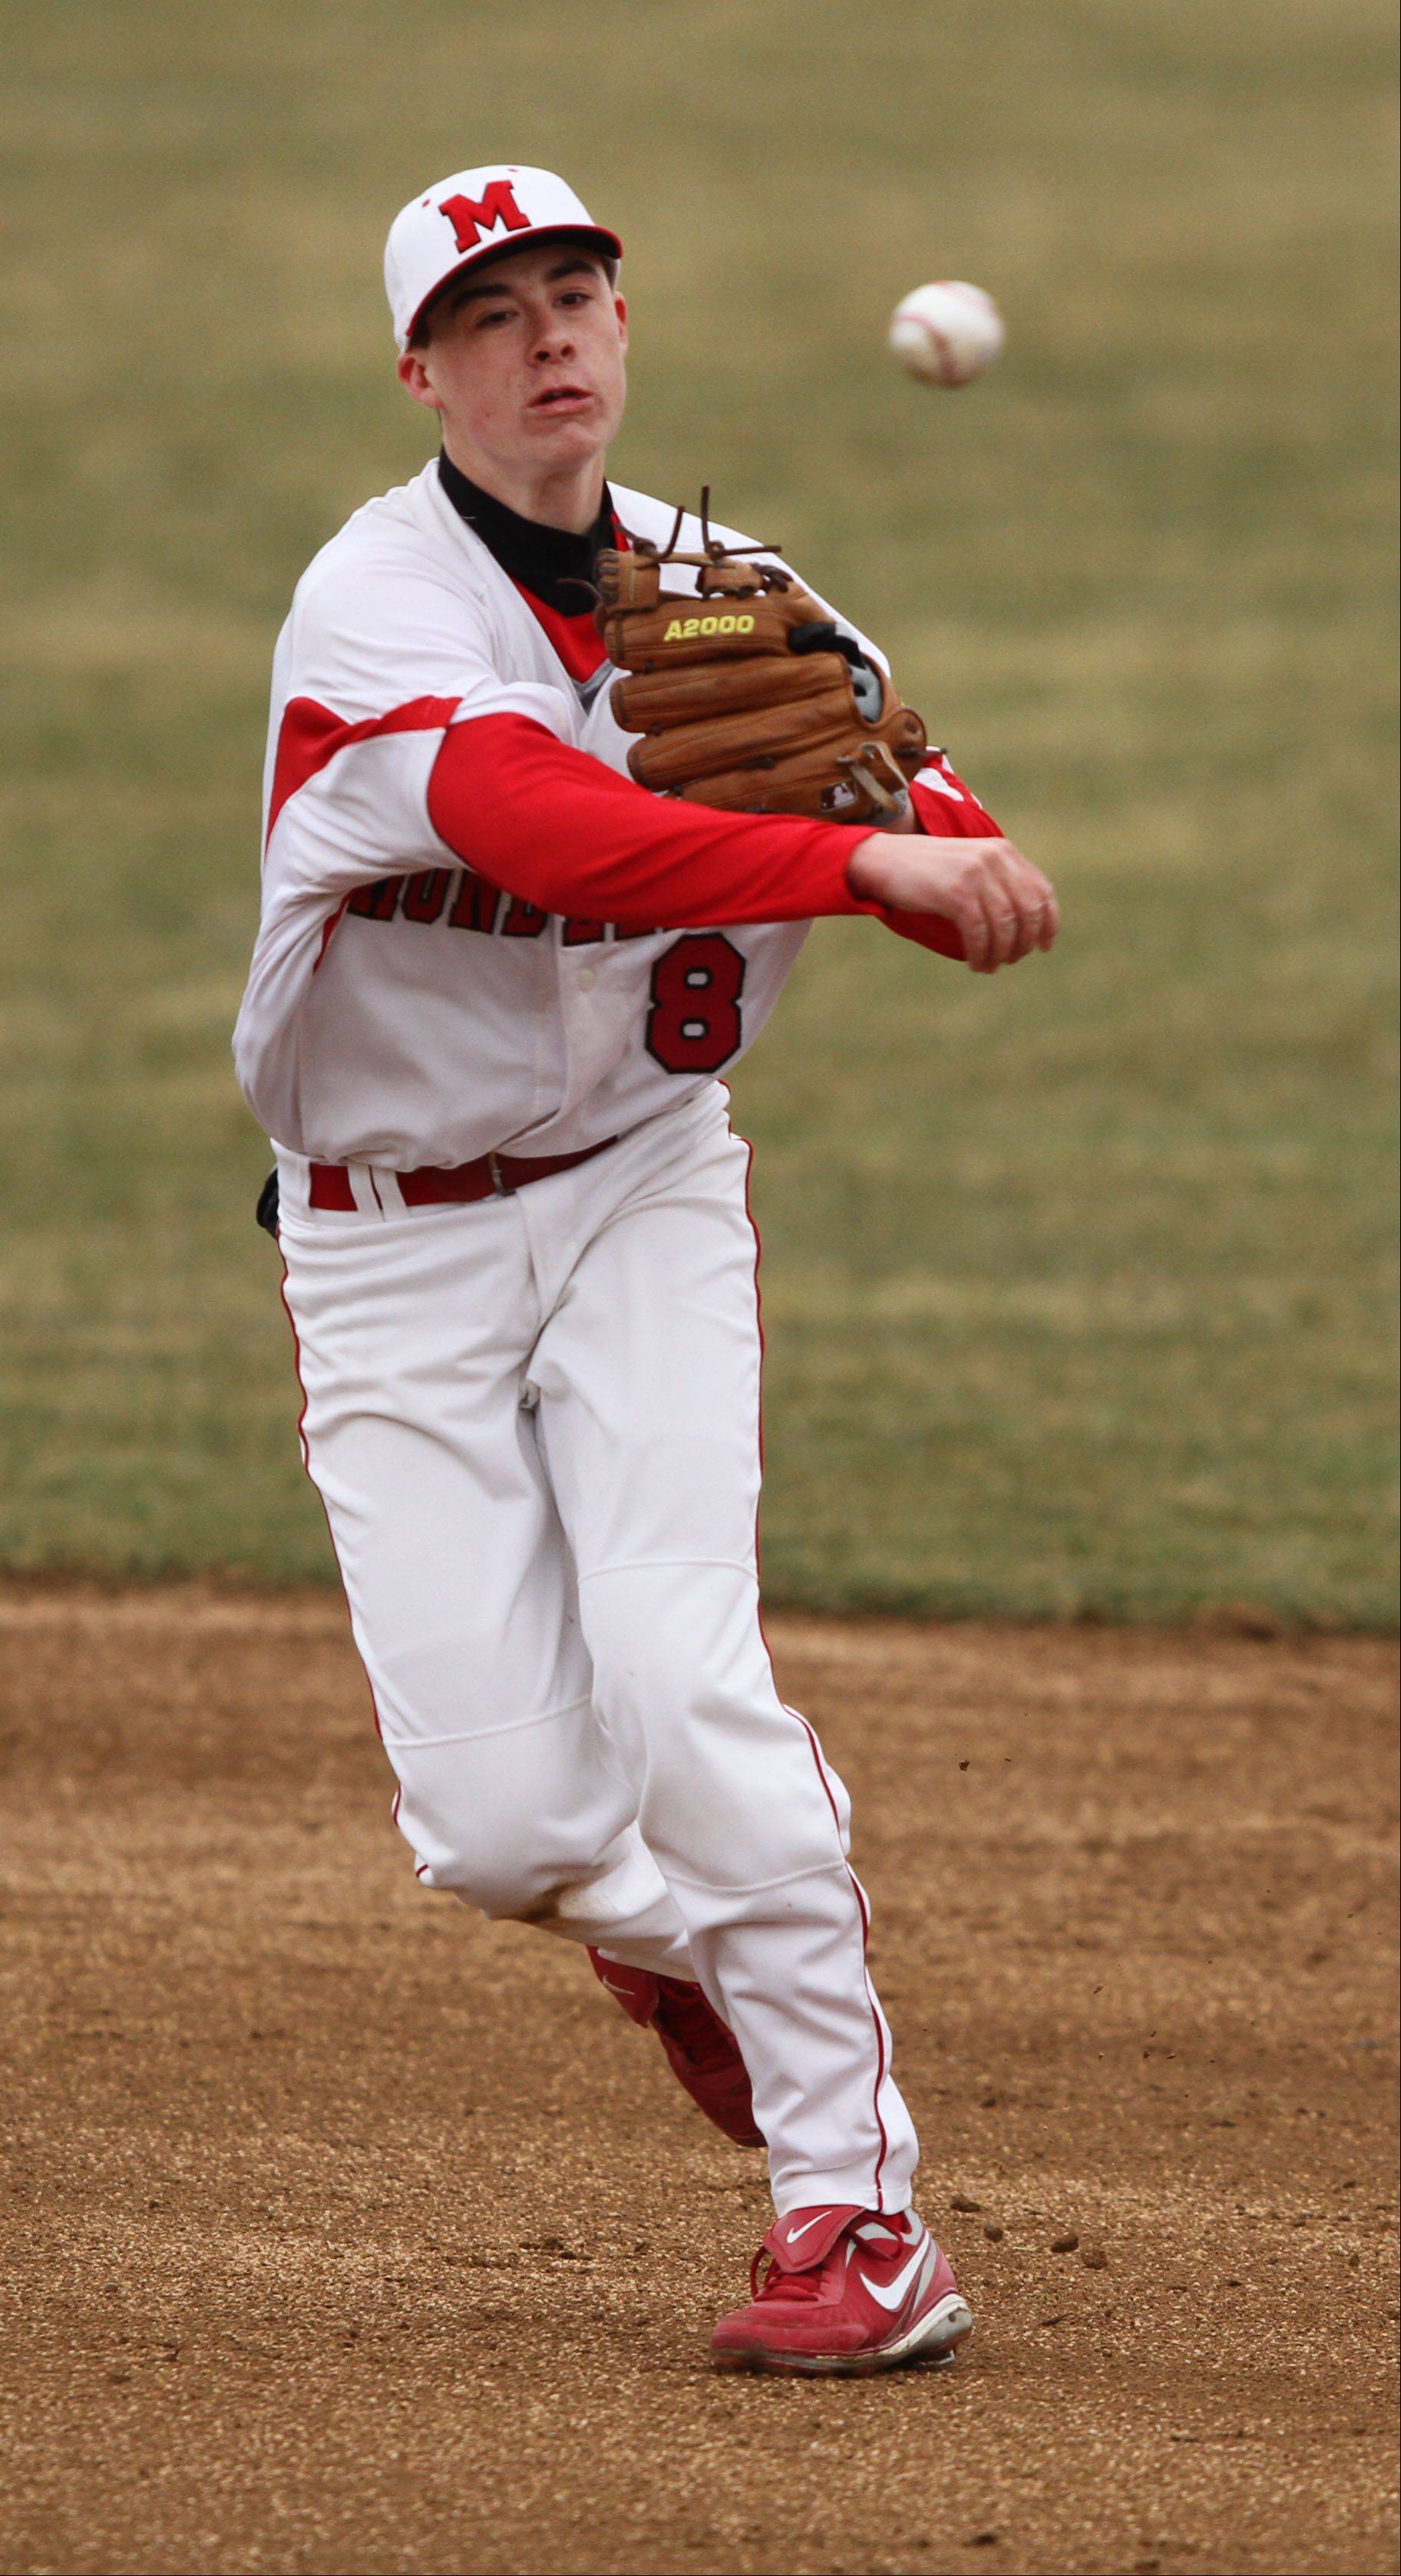 Mundelein's Derek Parola throws to first base against Lake Zurich on Tuesday at Mundelein High School.